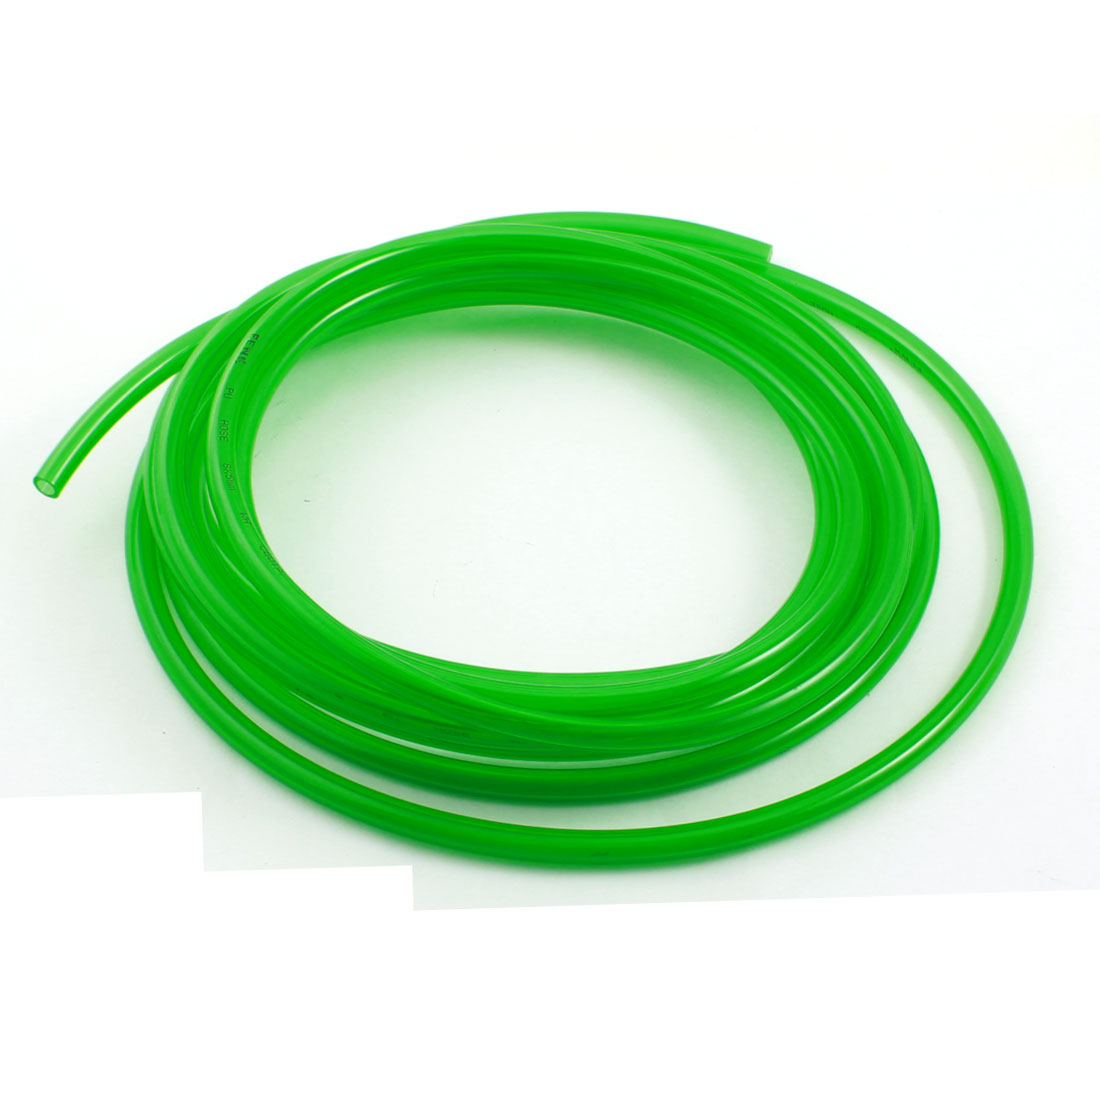 Engine Gas Fuel Oil Injection PU Line Tubing Tube 5mmx8mm 5Meter Clear Green